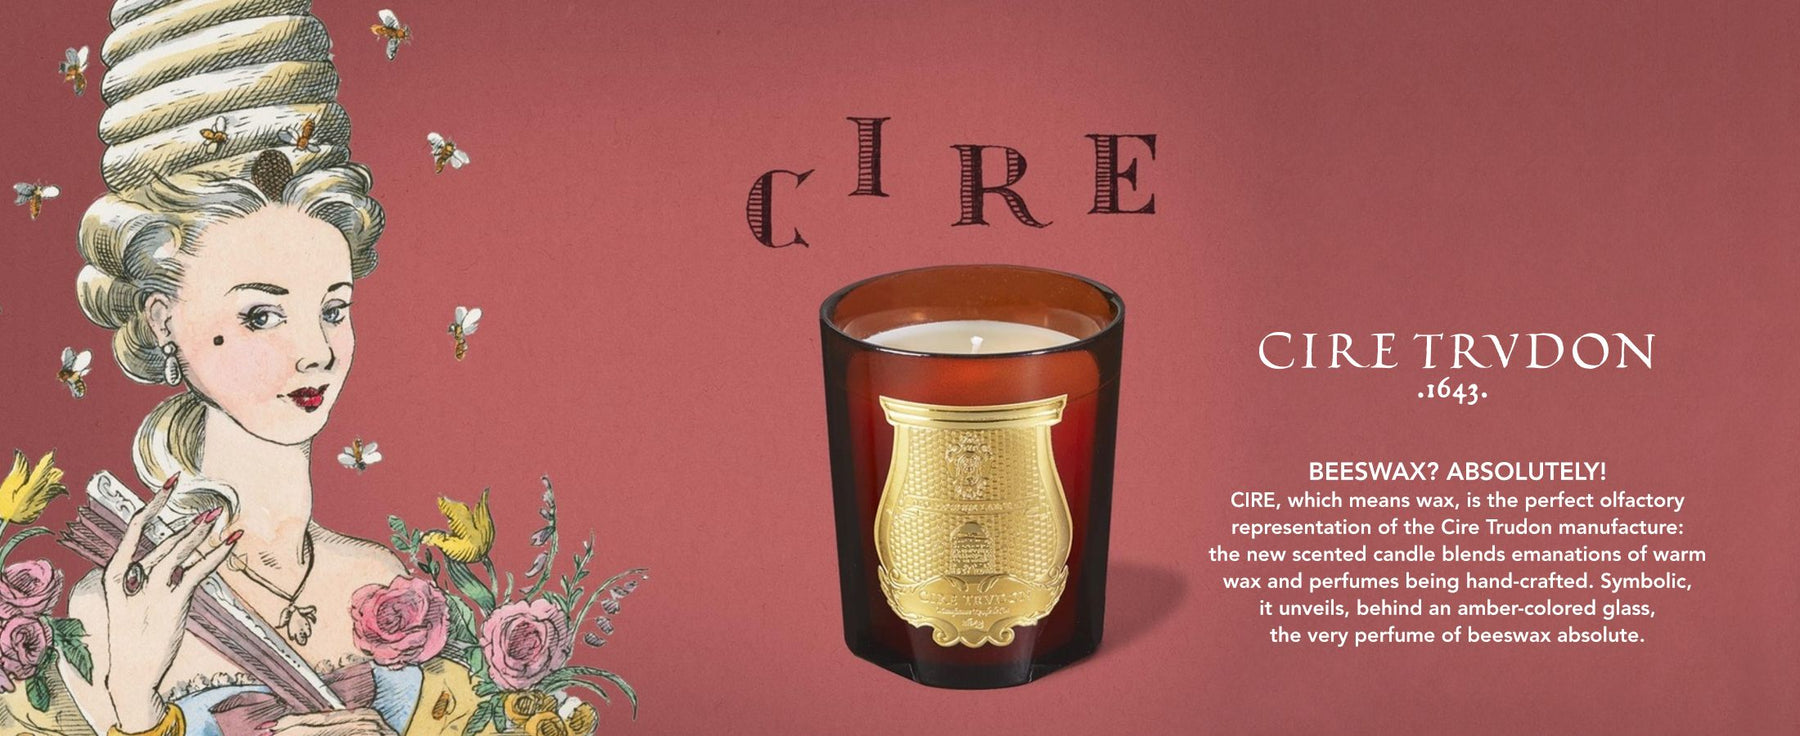 Cire Trudon Cire Candle - CIRE, which means wax, is a perfect olfactory representation: the new candle blends emanations of warm wax and perfumes being hand-crafted. Symbolic, it unveils, behind an amber-colored glass, the very perfume of beeswax absolute